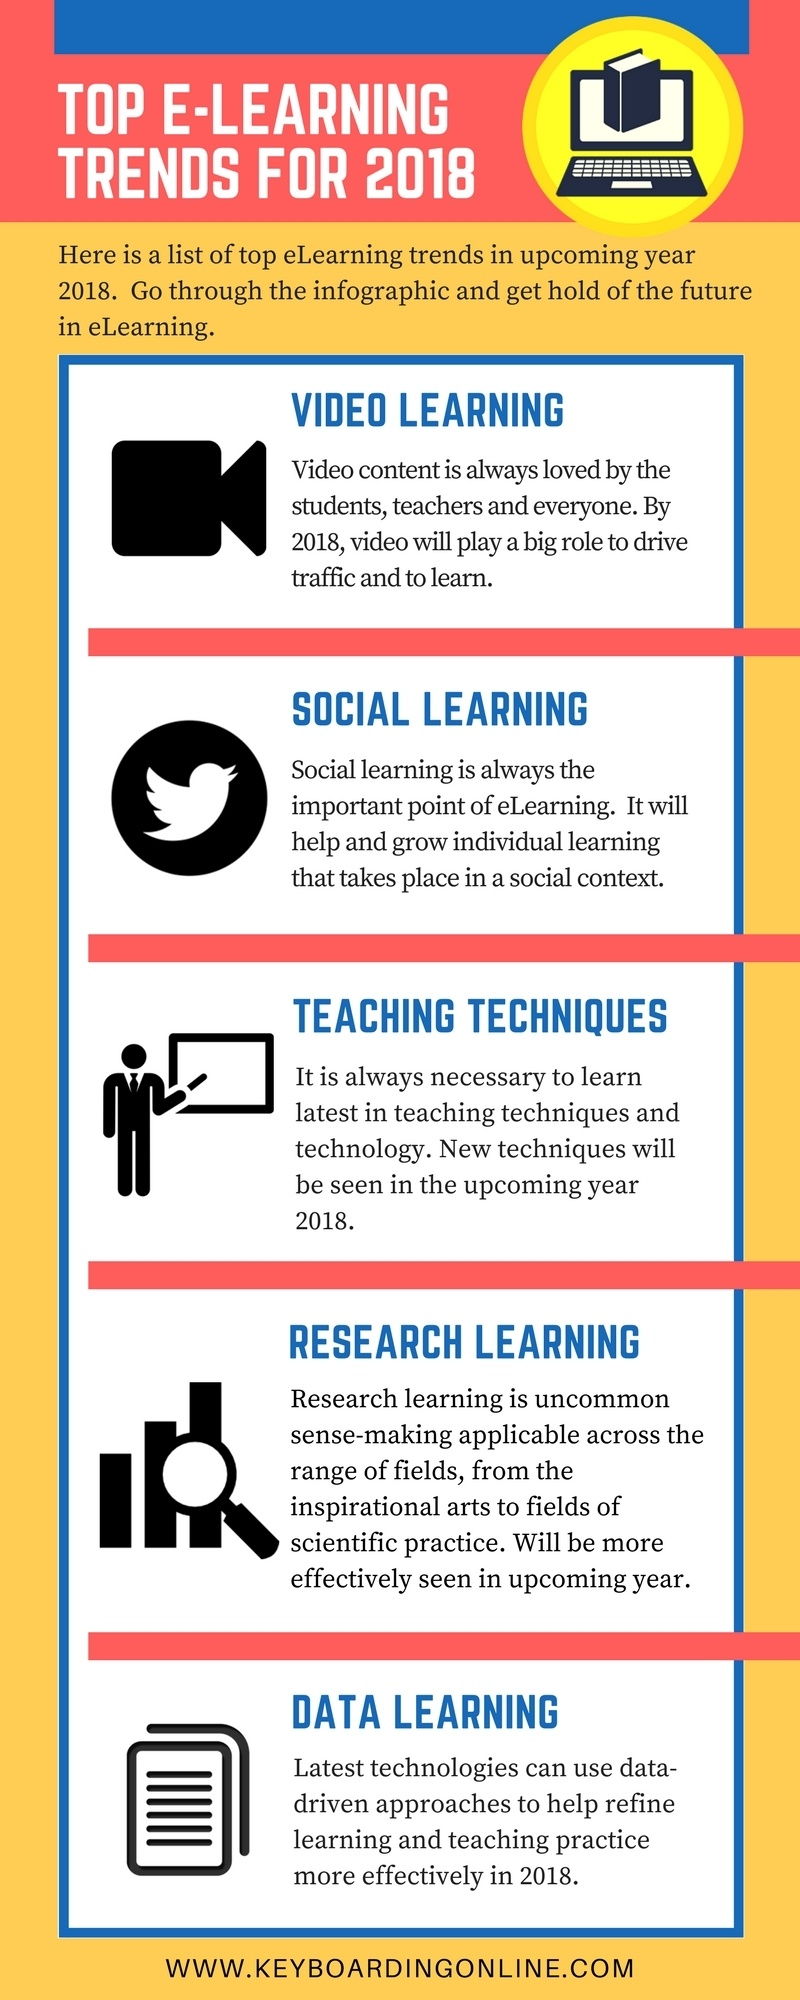 Top eLearning Trends for 2017-2018 Infographic